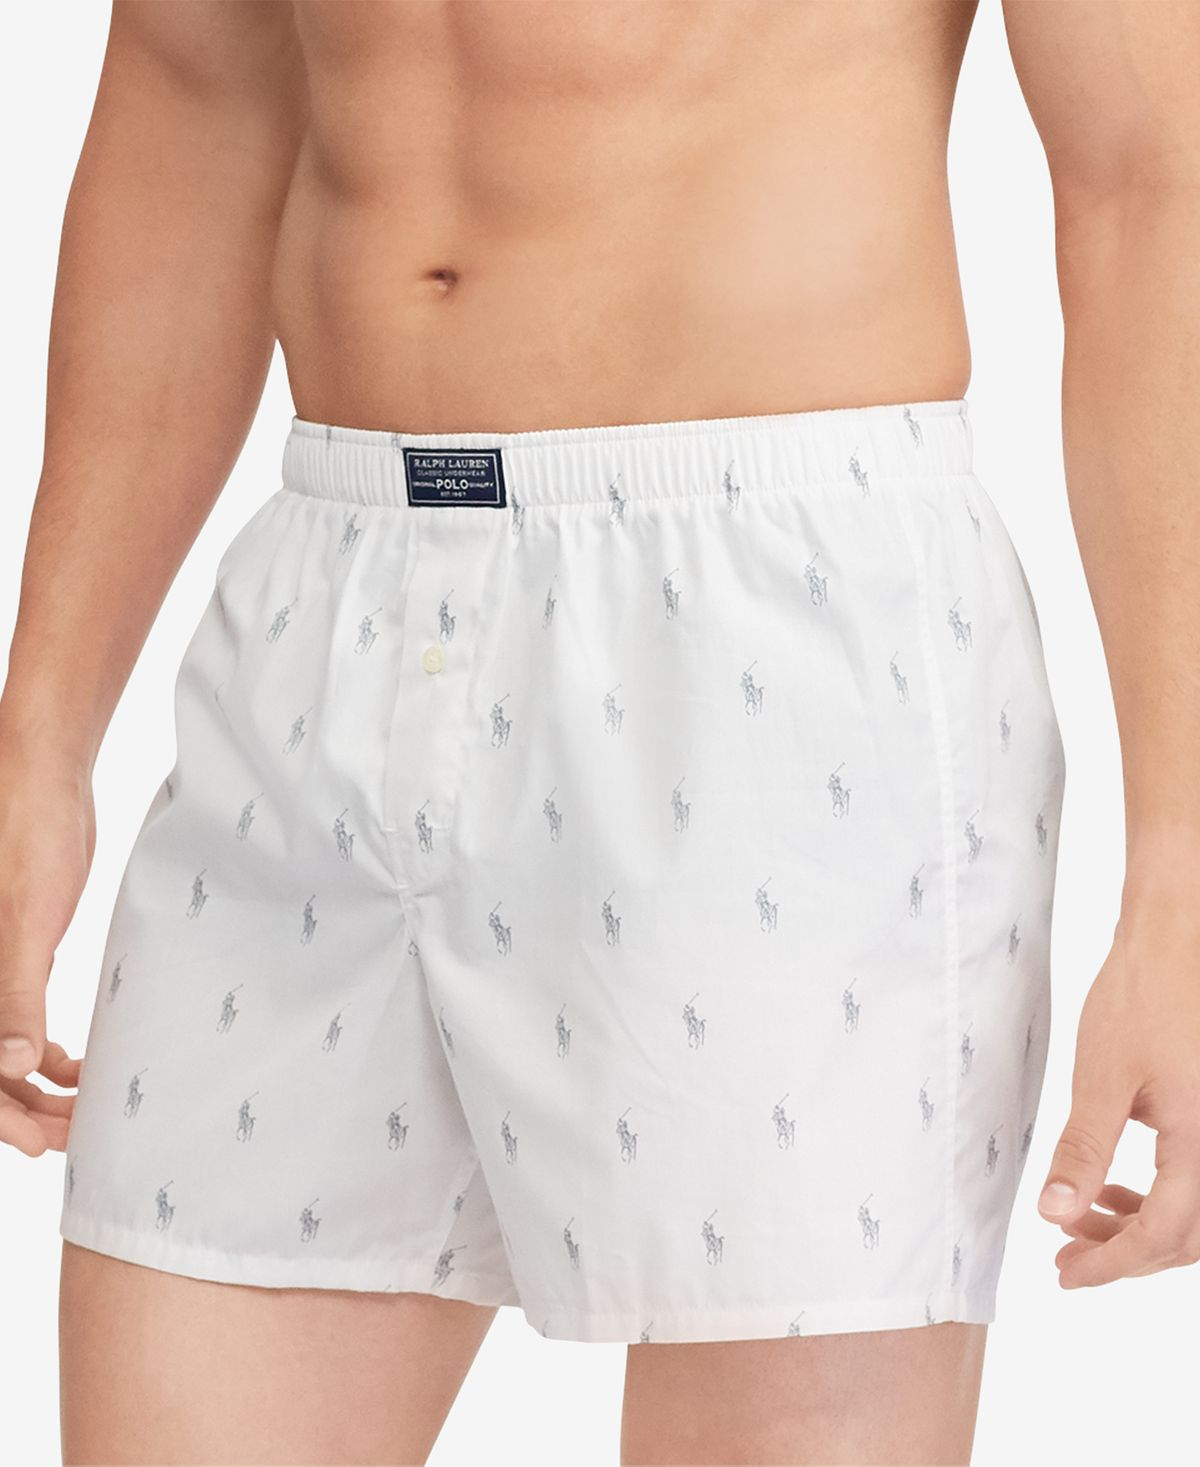 Polo Ralph Lauren Pony-print Woven Cotton Boxer Briefs White